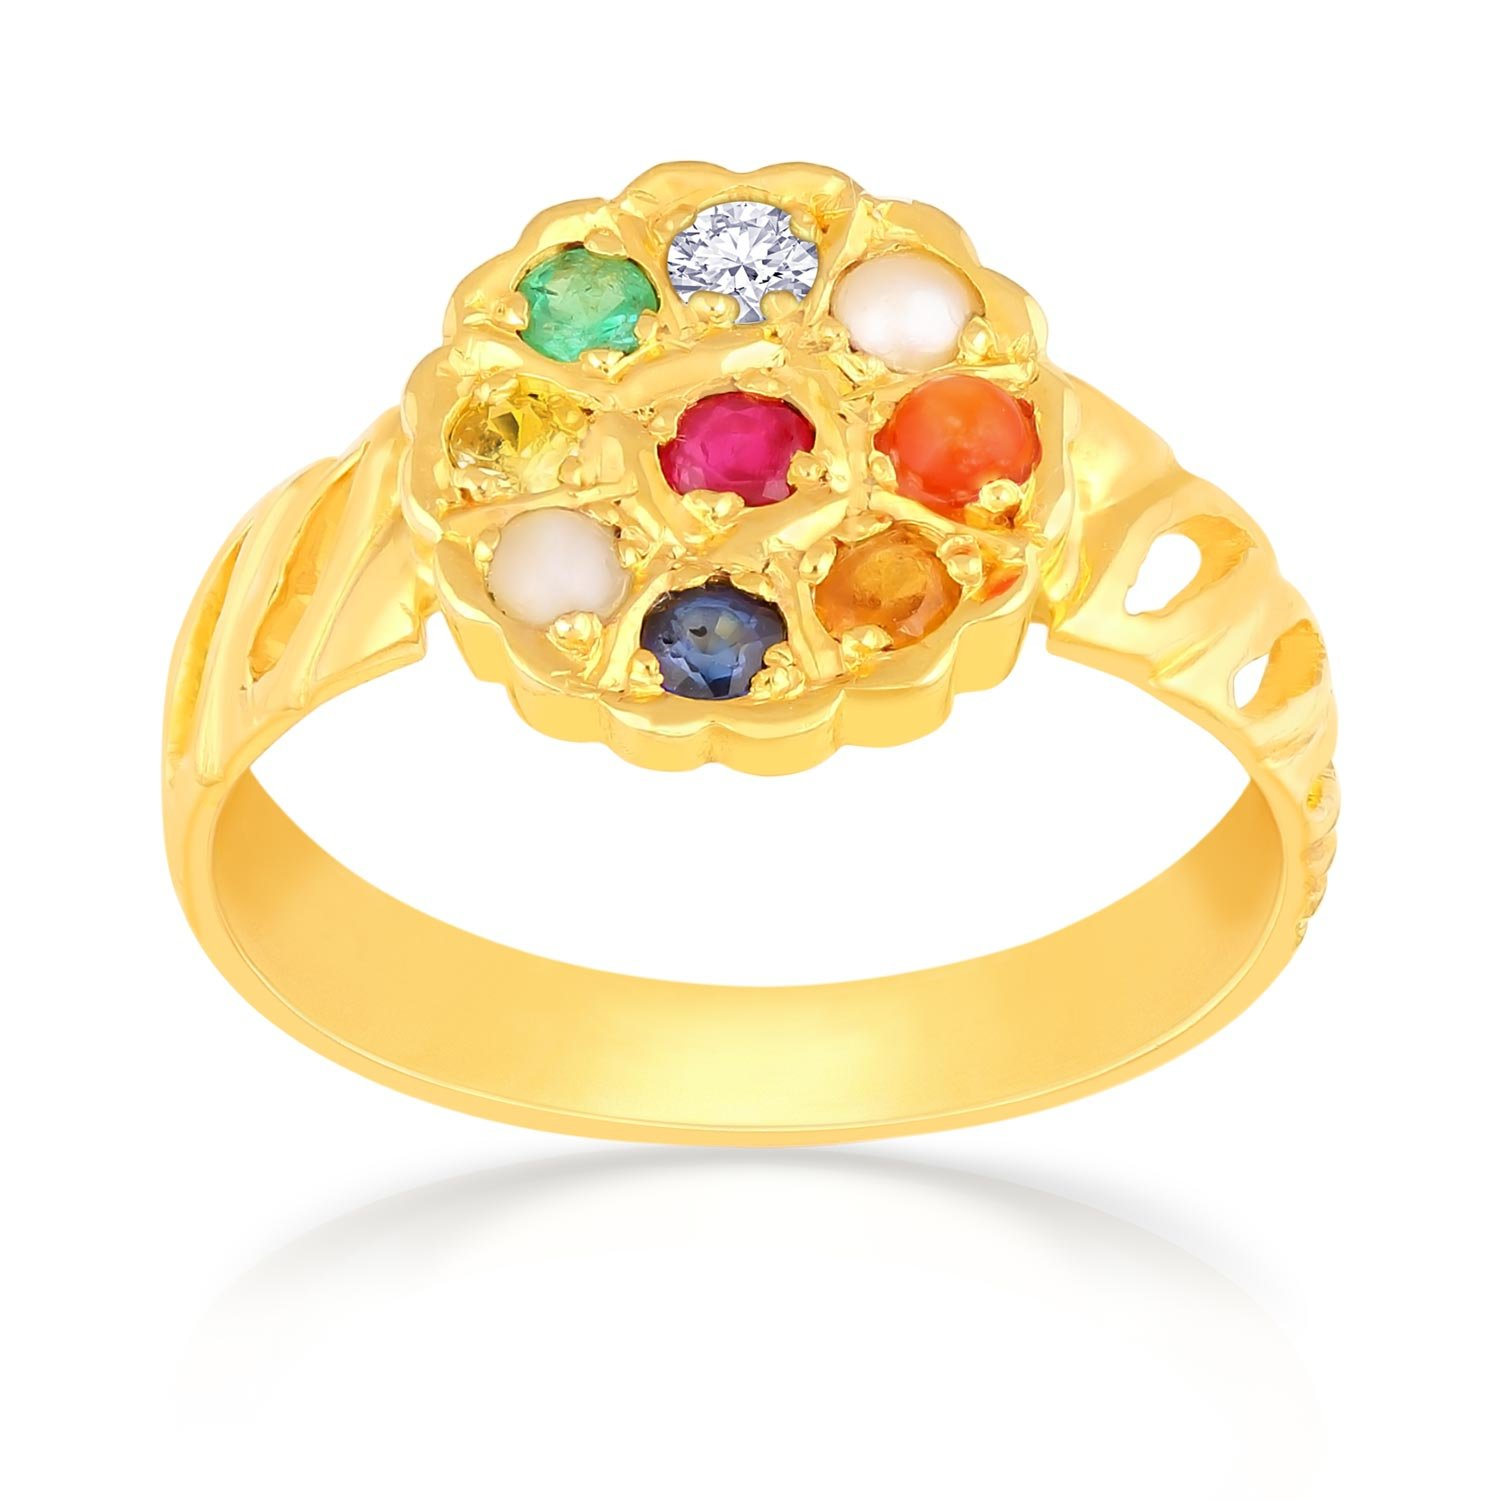 rose band the topic metal size wedding a yellow last gold your img is of solitaire same white with pic diamond engagement or show rings smaller me